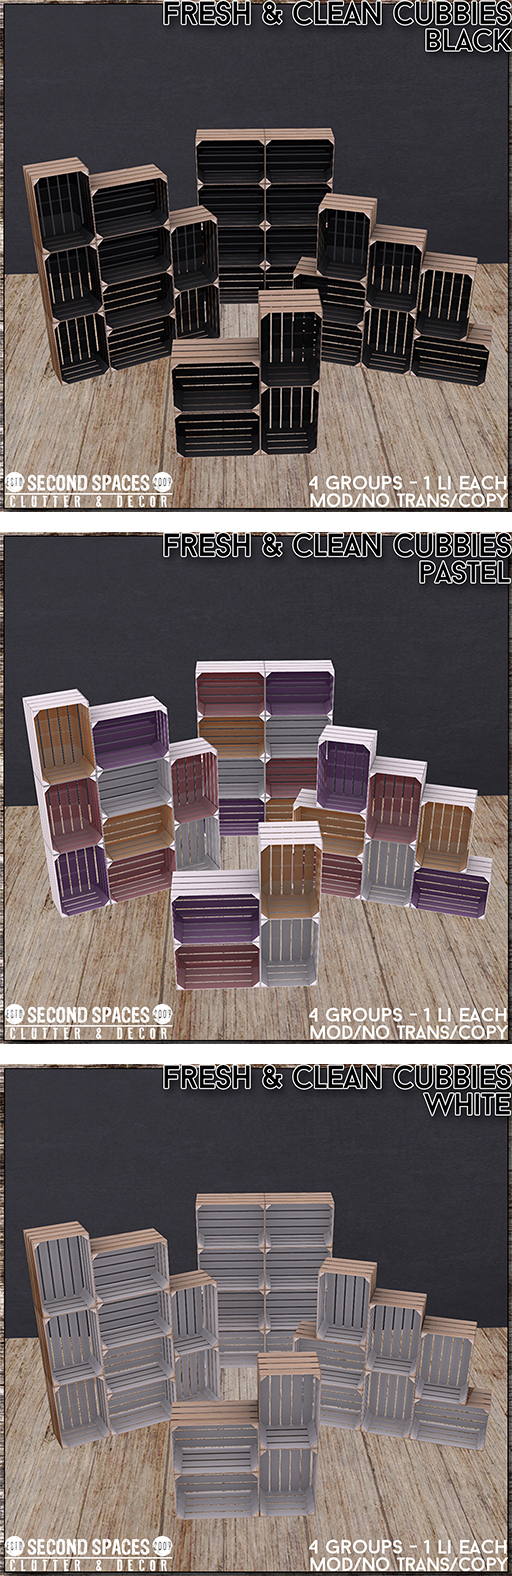 freshclean cubbies all colors.jpg